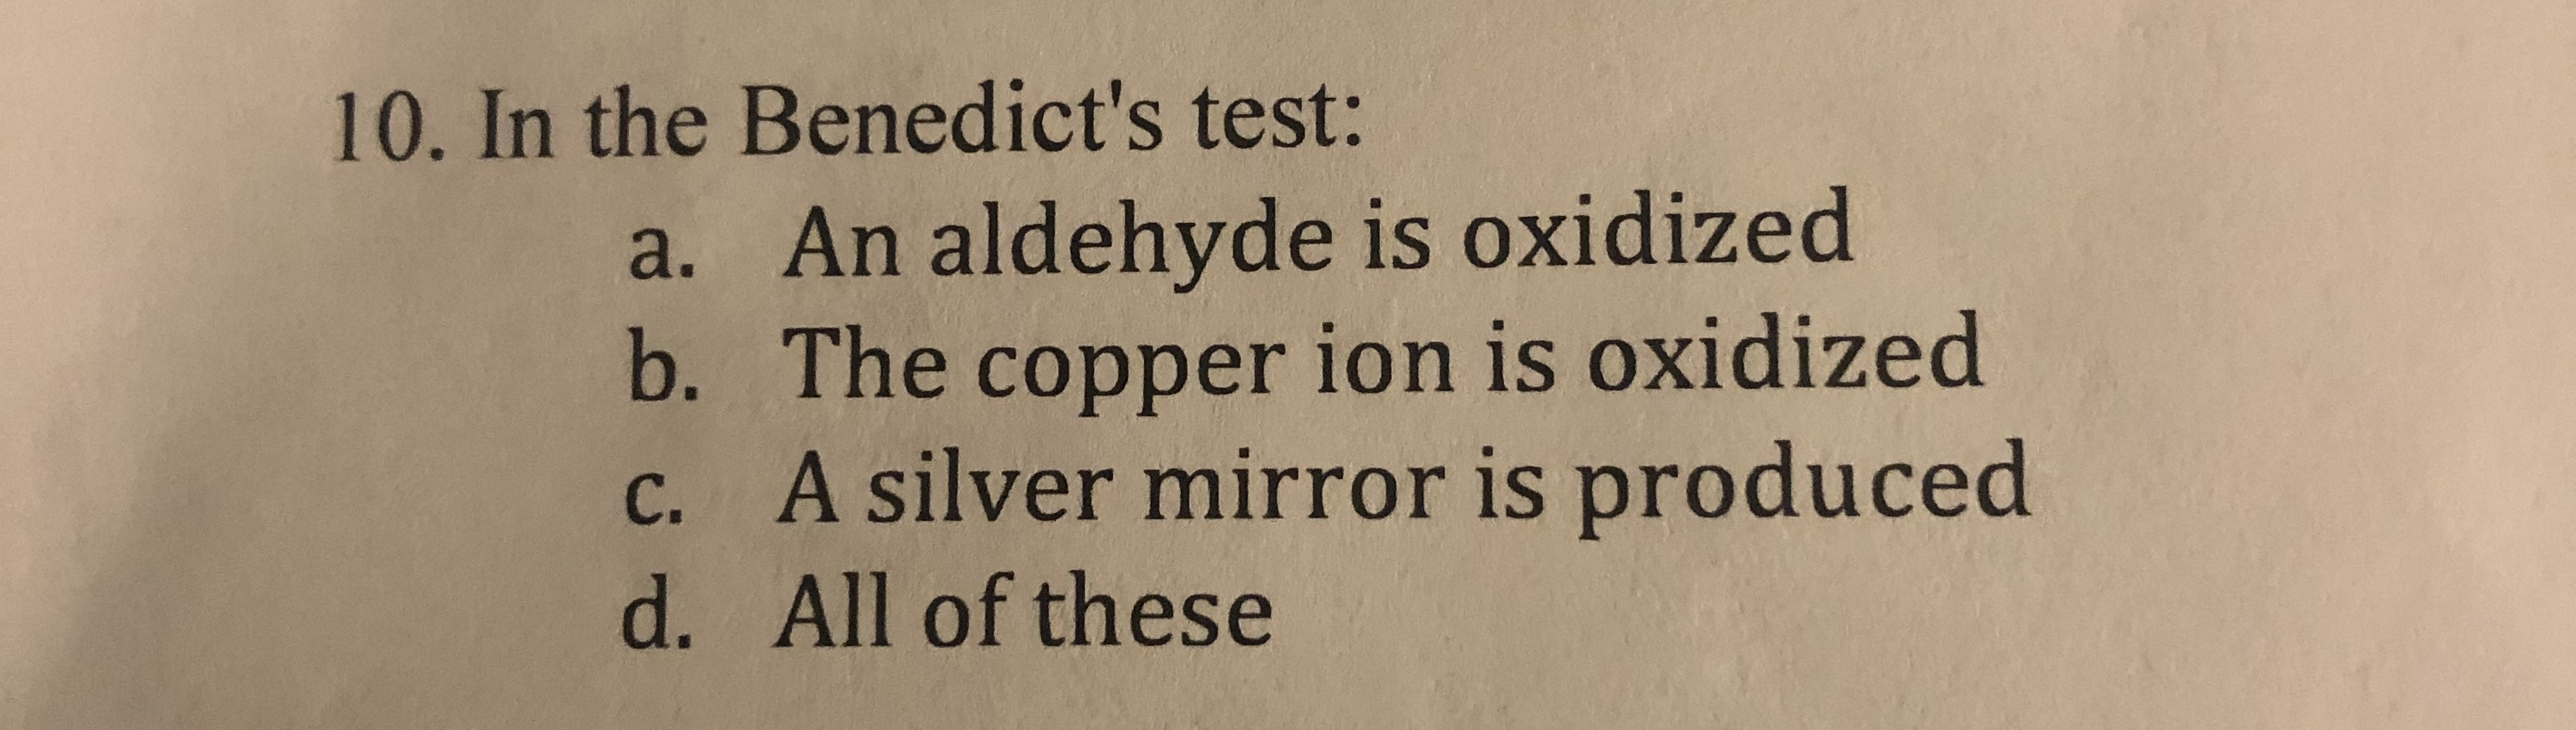 10. In the Benedict's test: a. An aldehyde is oxidized b. The copper ion is oxidized c. A silver mirror is produced d. All of these